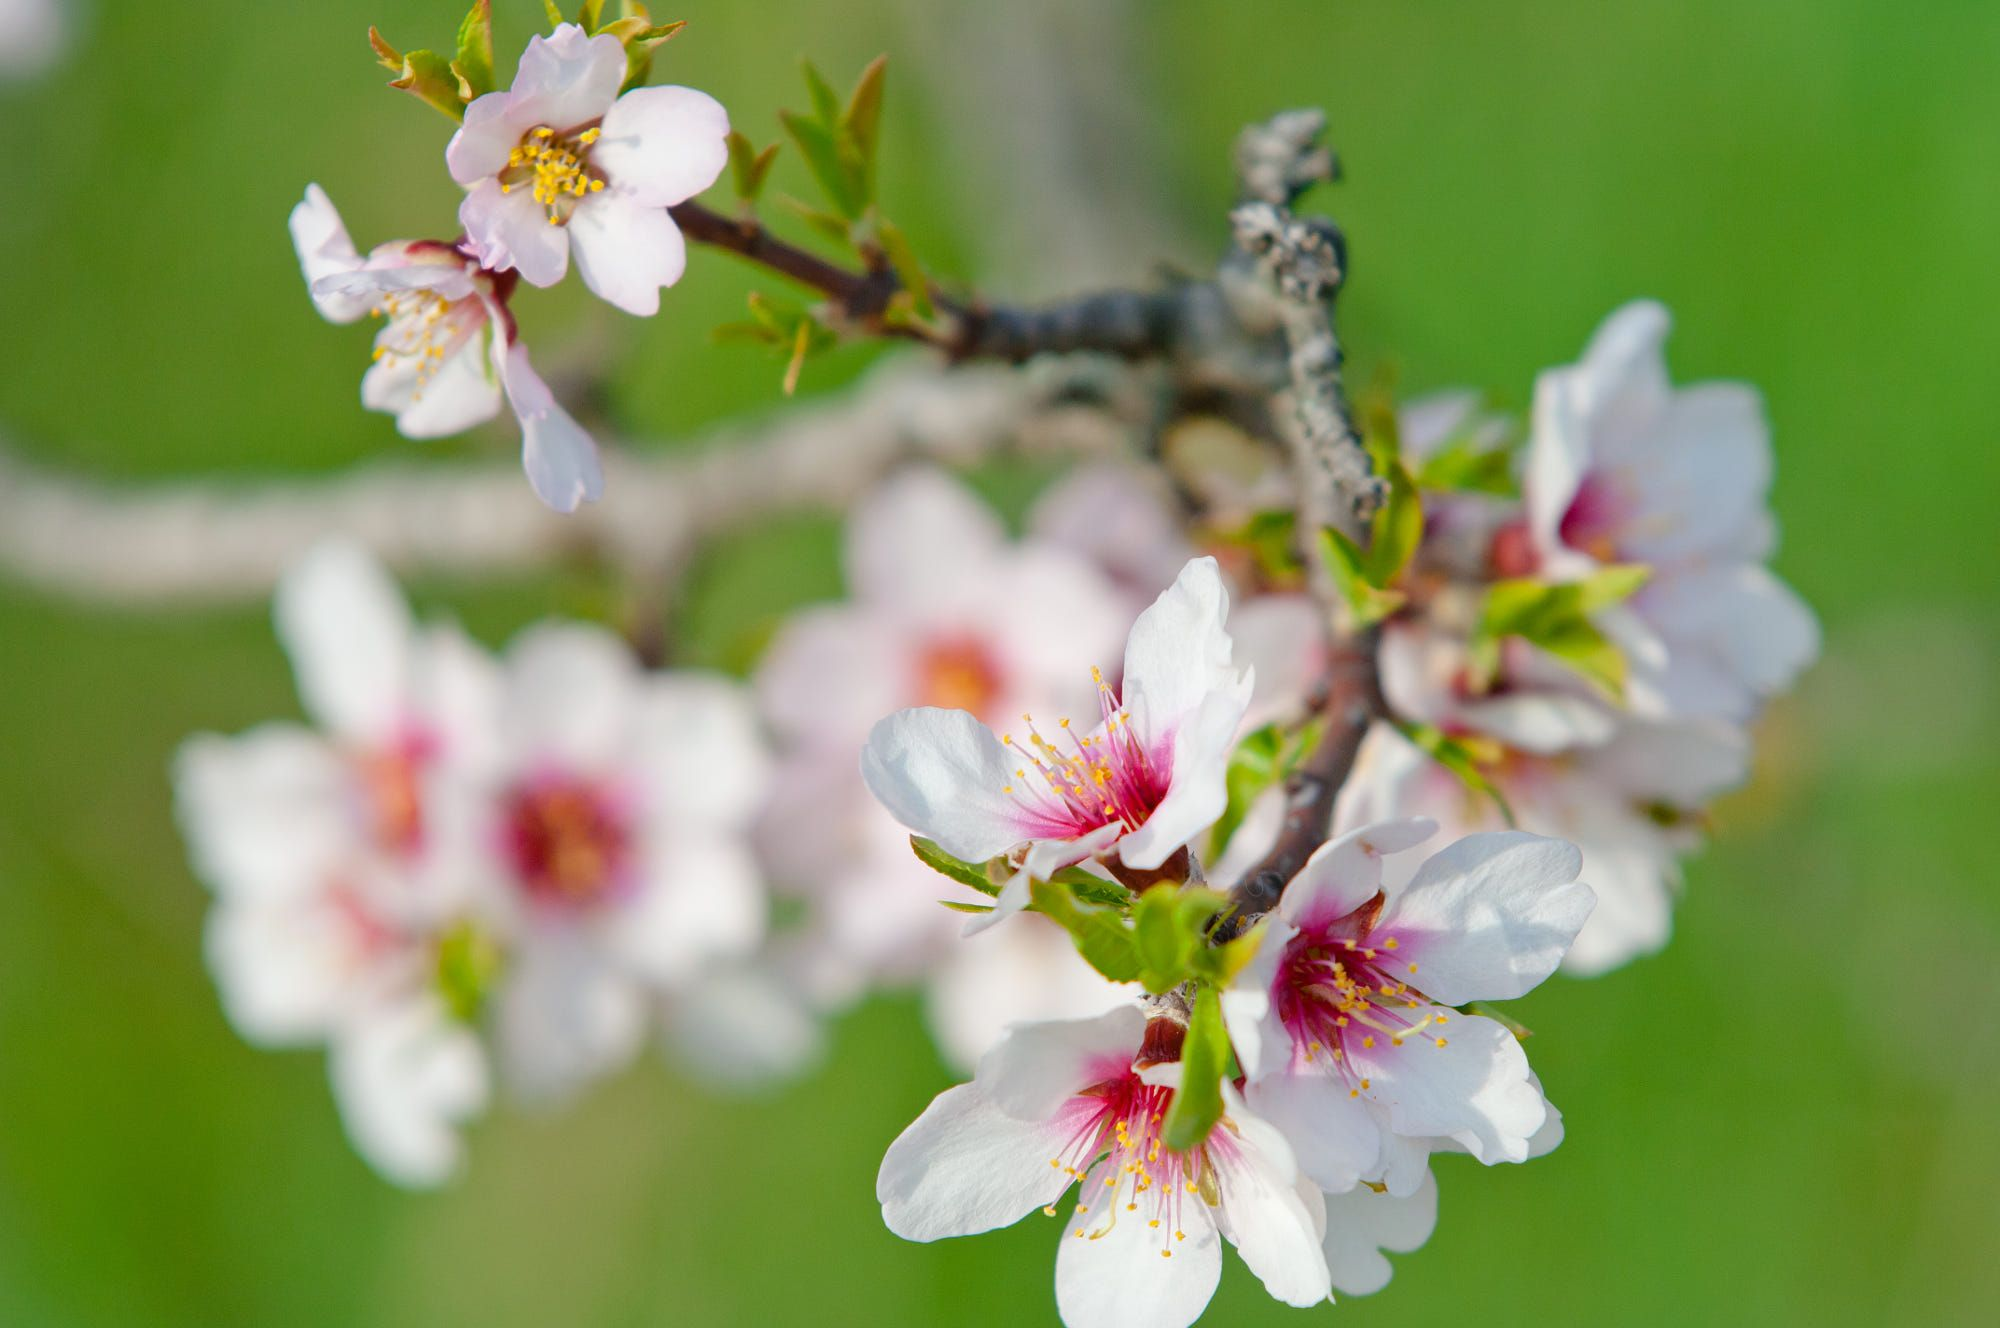 Almond Blossom Full Bloom Blooming Almond Tree In March Almond Blossom Blossom Almond Tree